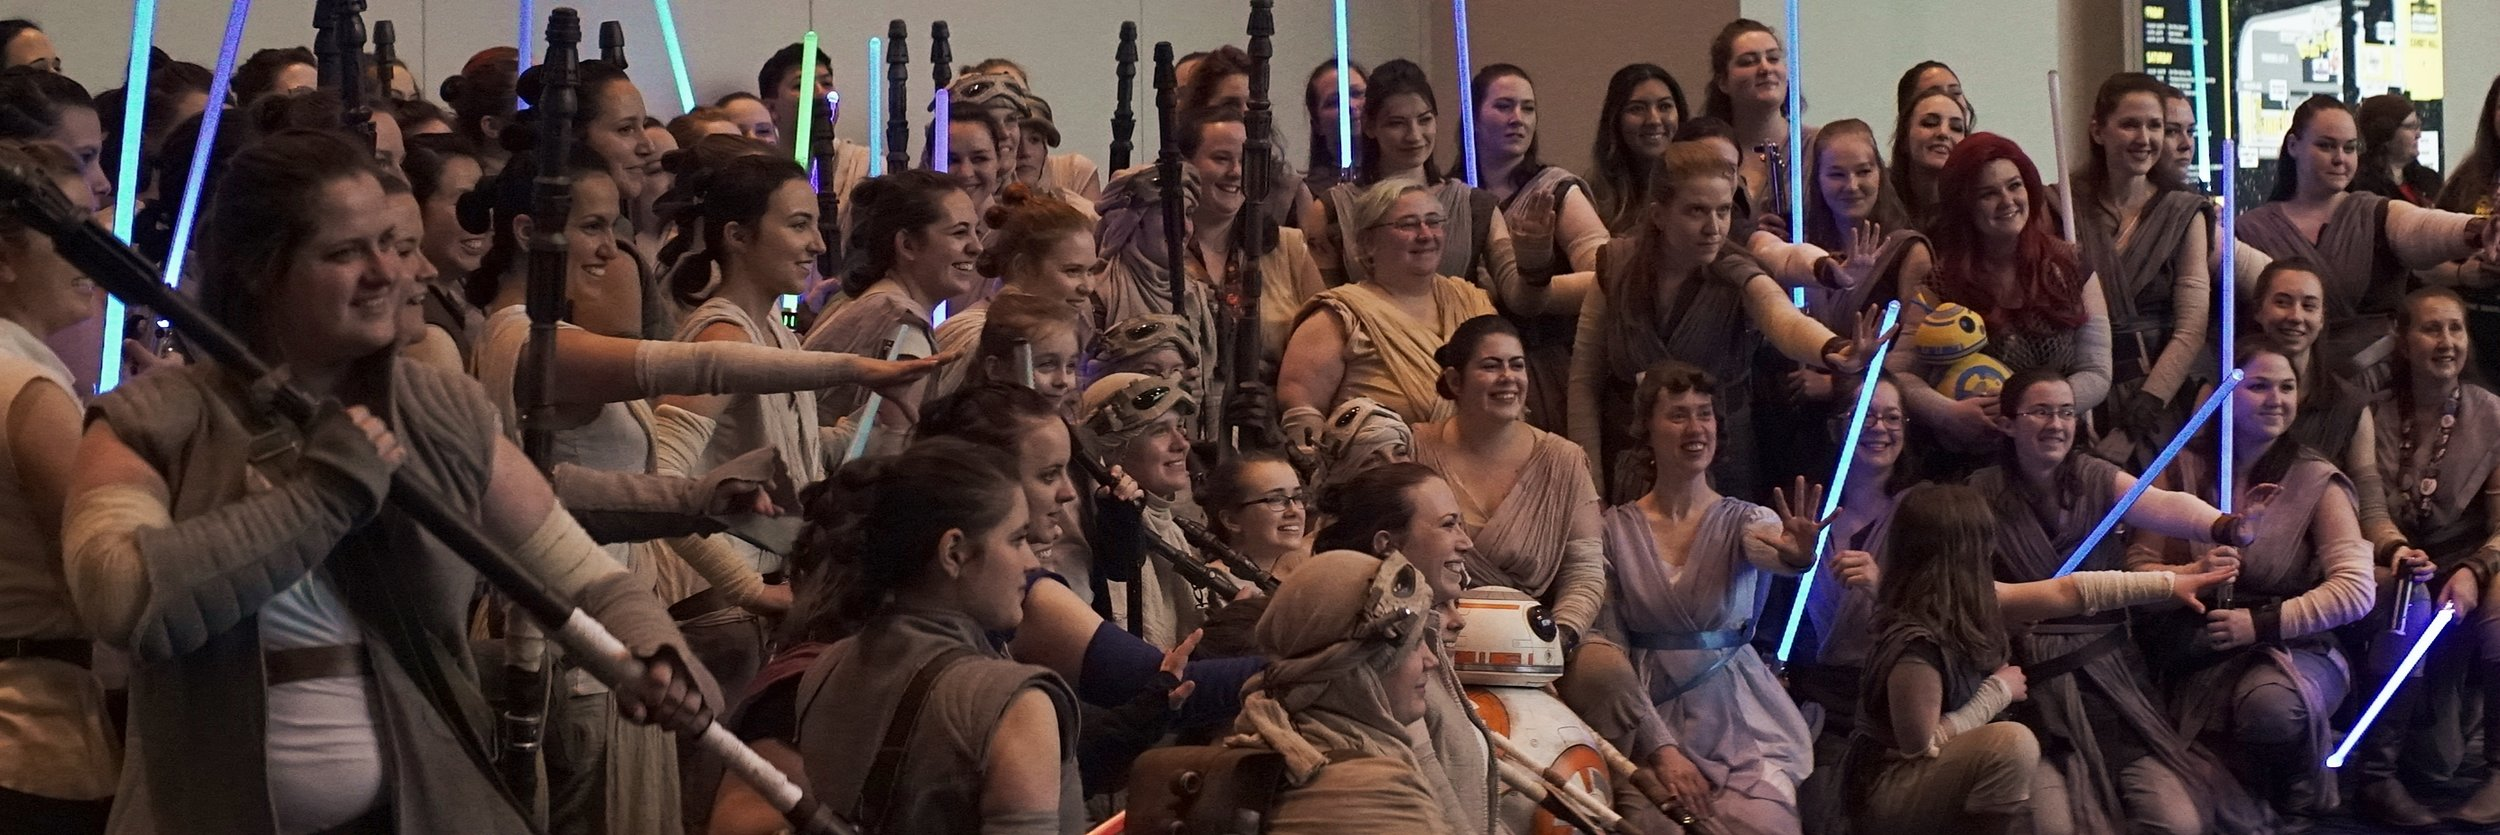 Lomo 75mm Anamorphic Lens | Star Wars Celebration Chicago - SWCC | A gang of Rey girls at McCormick Place. Olivia's in there somewhere. - Photo by: Keith Nickoson